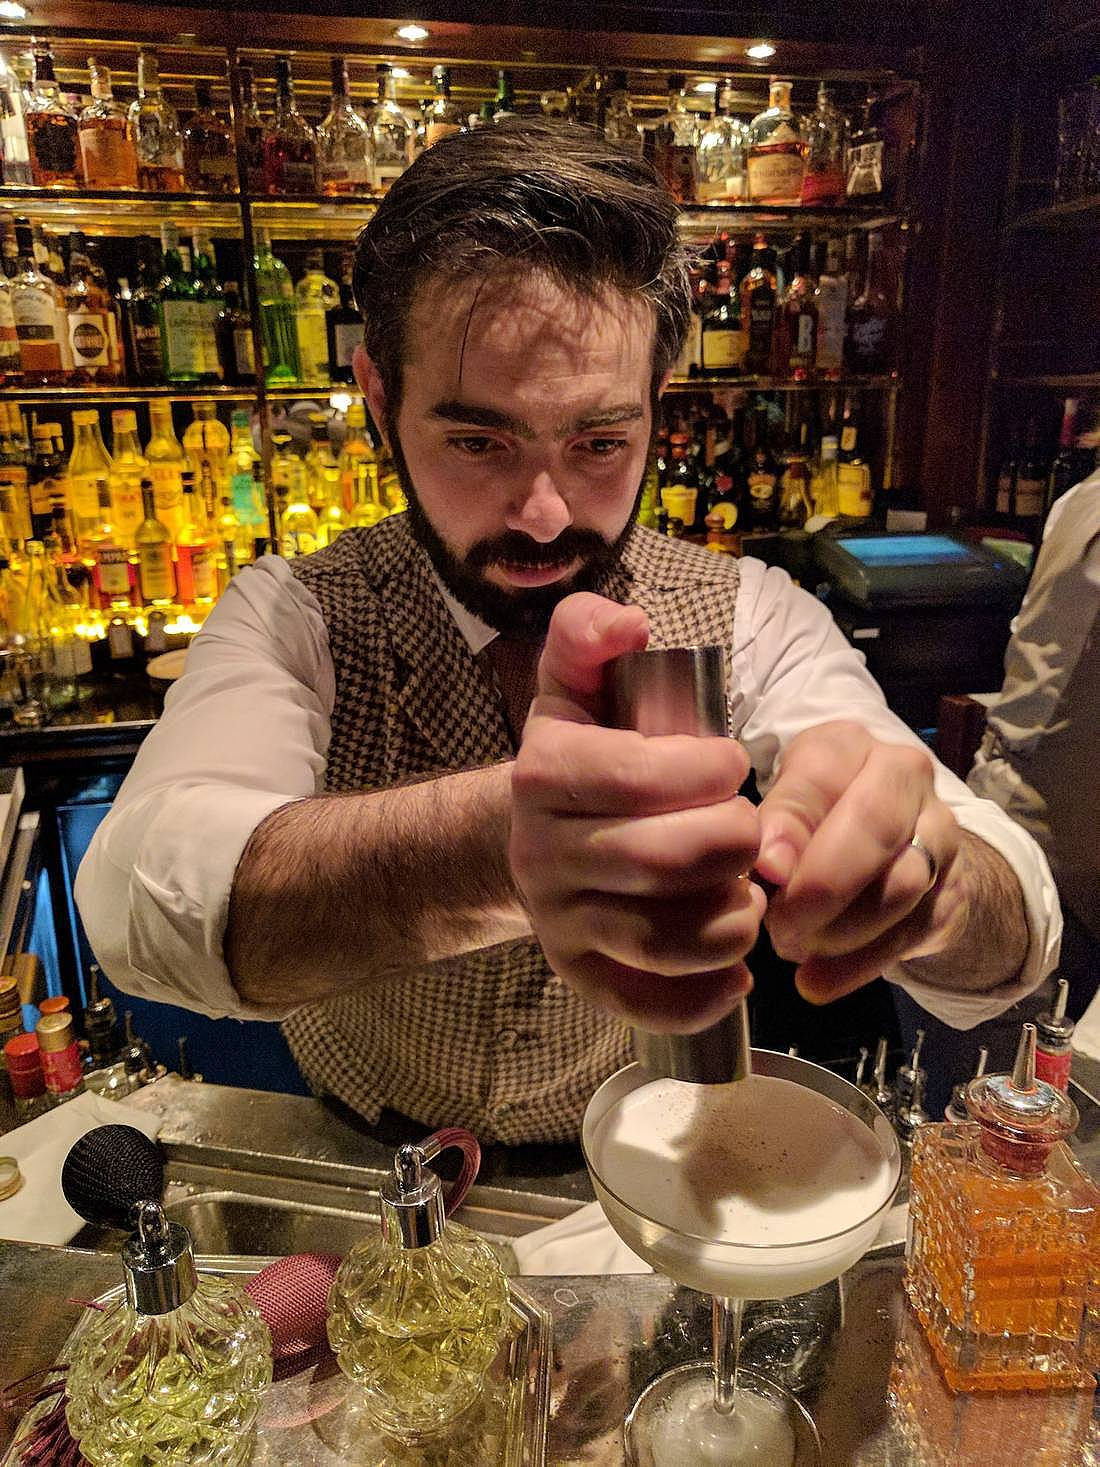 Mixologist Brian Calleja of the Bloomsbury Club Bar at the Bloomsbury, a Doyle property in London